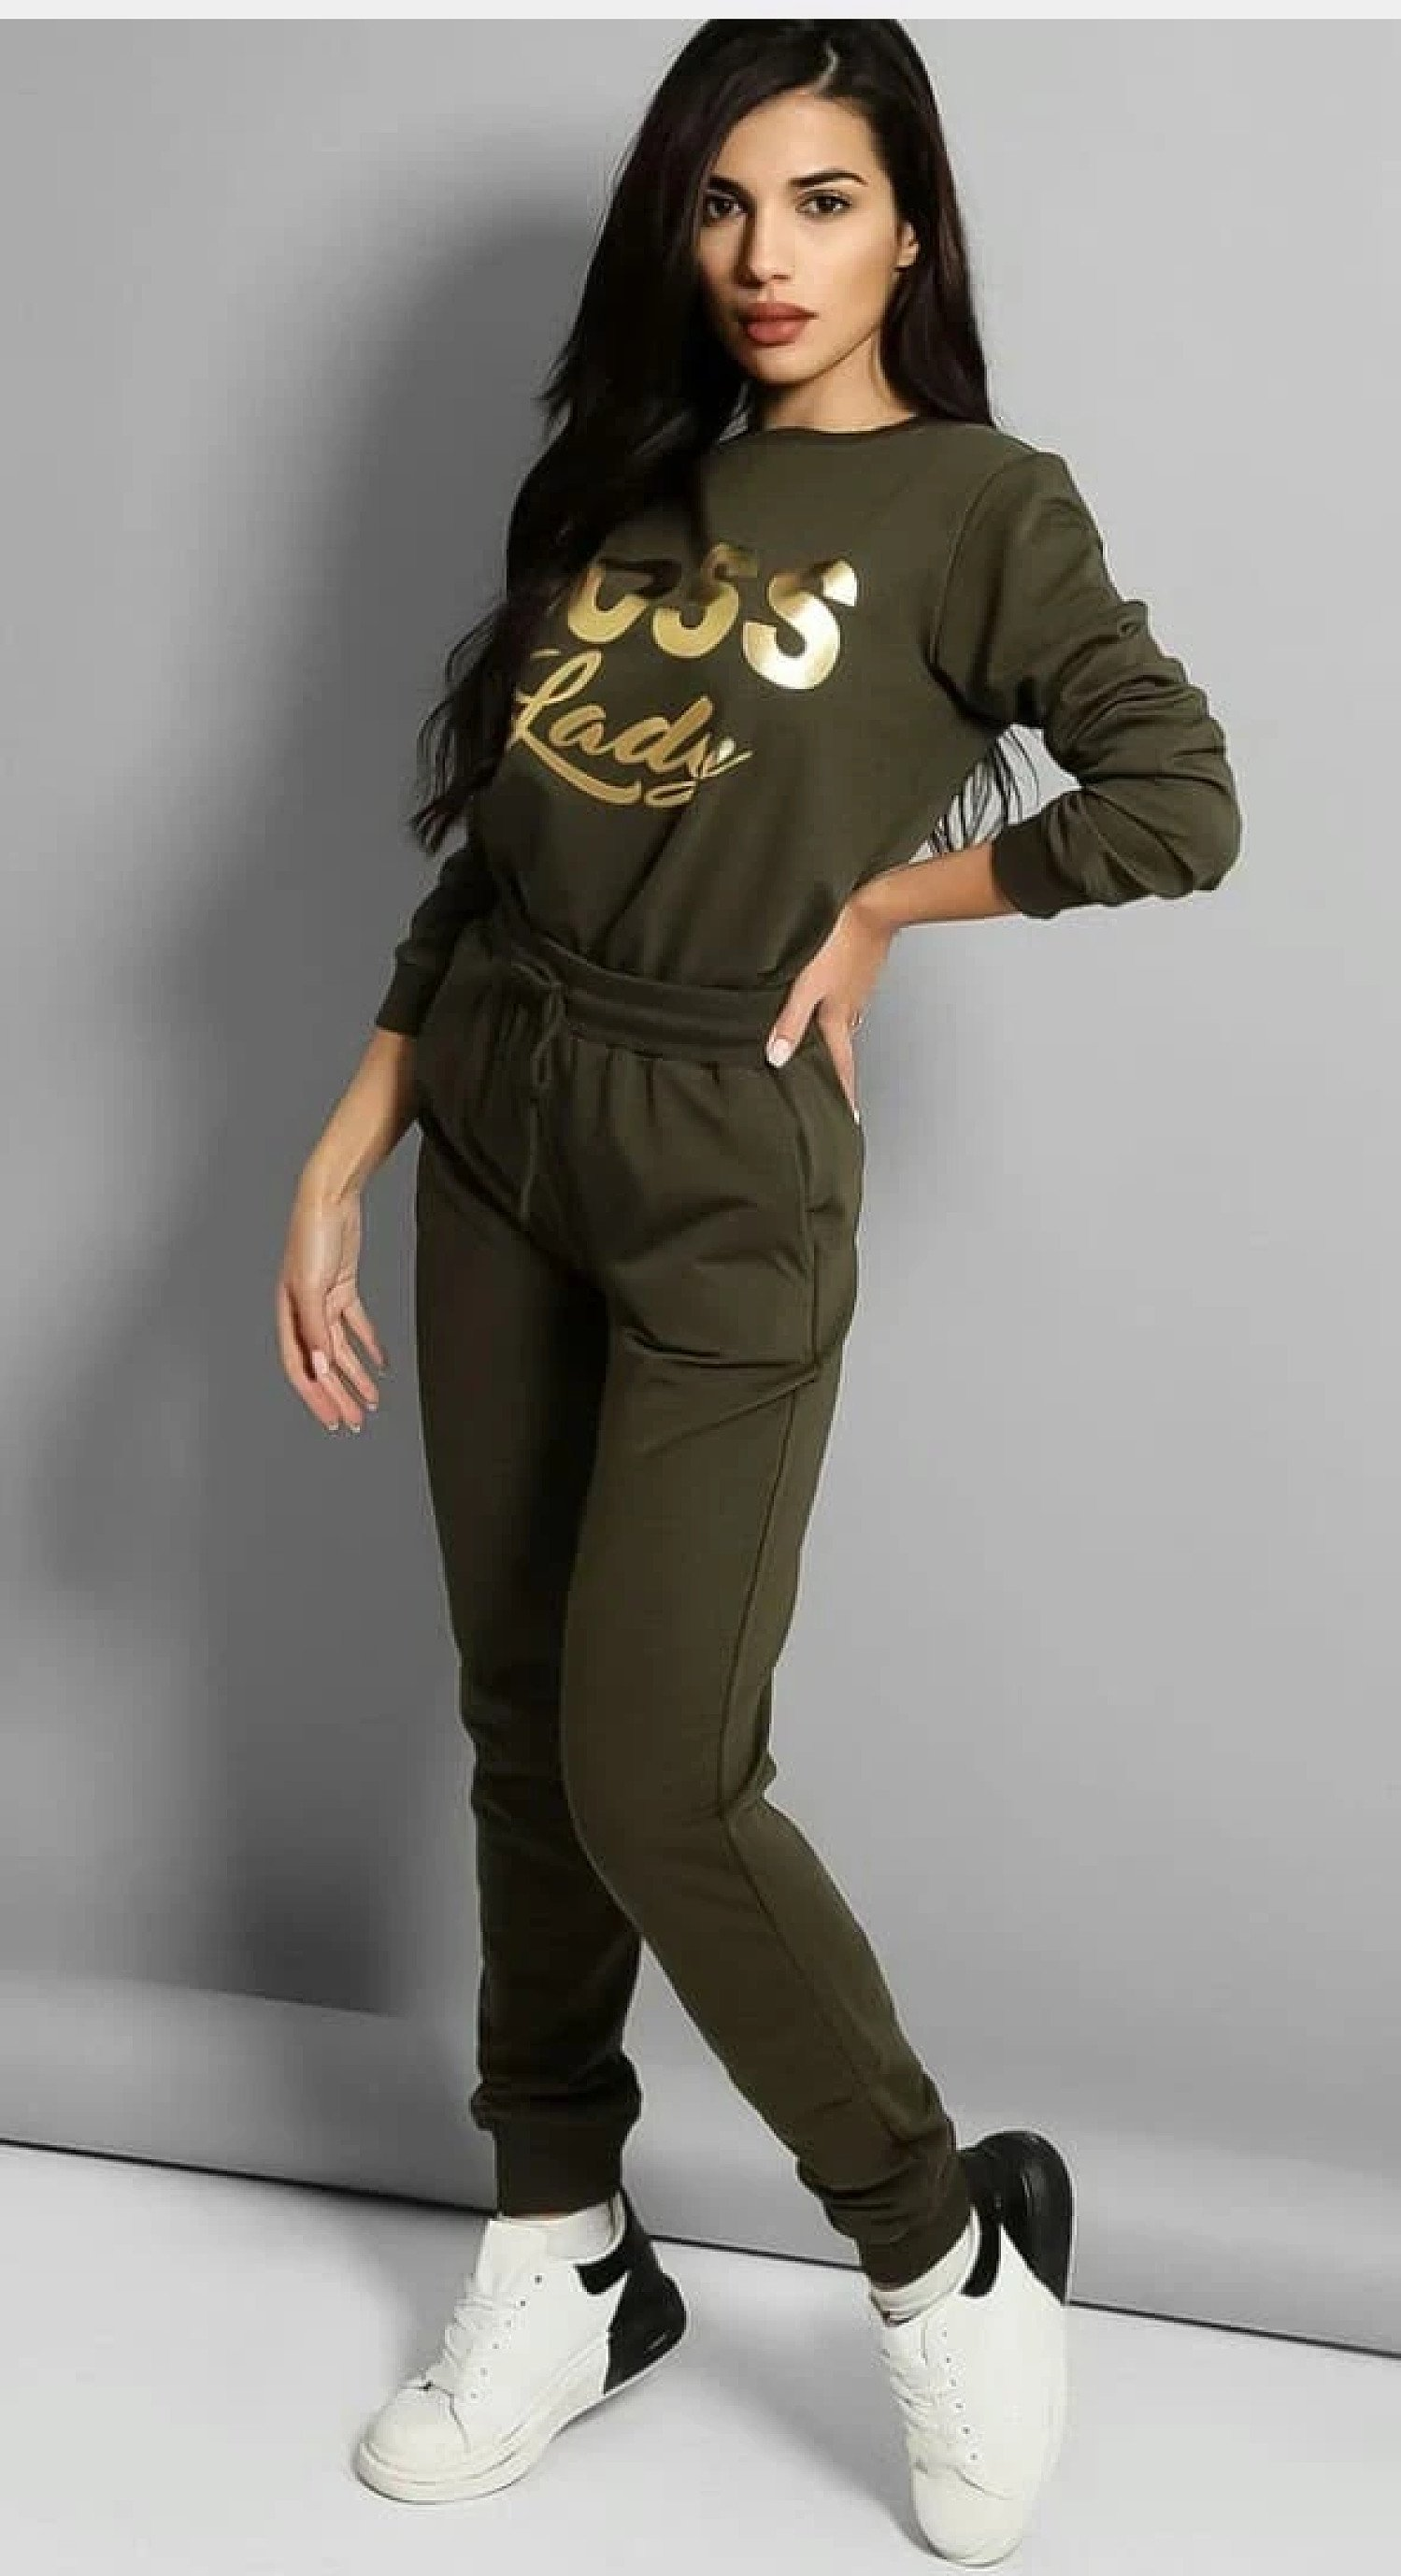 2 Piece Boss Lady Cotton Tracksuit Plus Sizes Free Postage